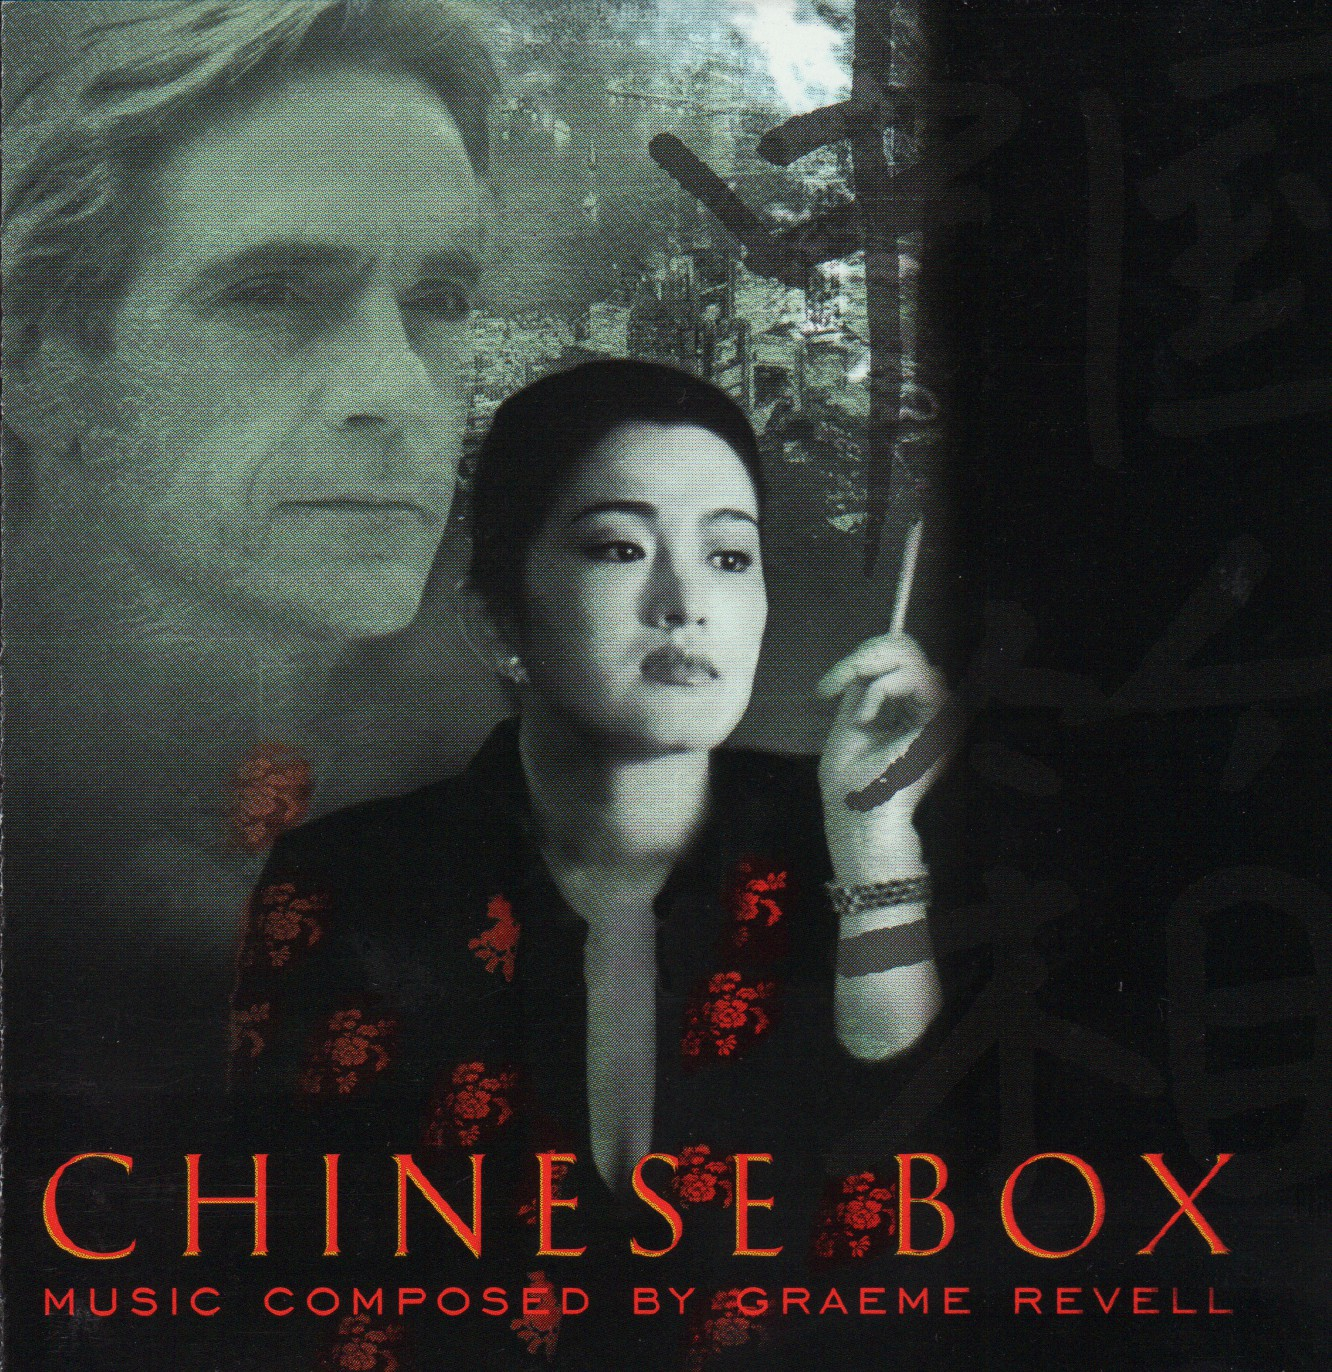 chinese box film the blog of charles chinese box is a 1997 movie directed by wayne wang director of joy luck club released in 1993 starring jeremy irons gong li maggie cheung and michael